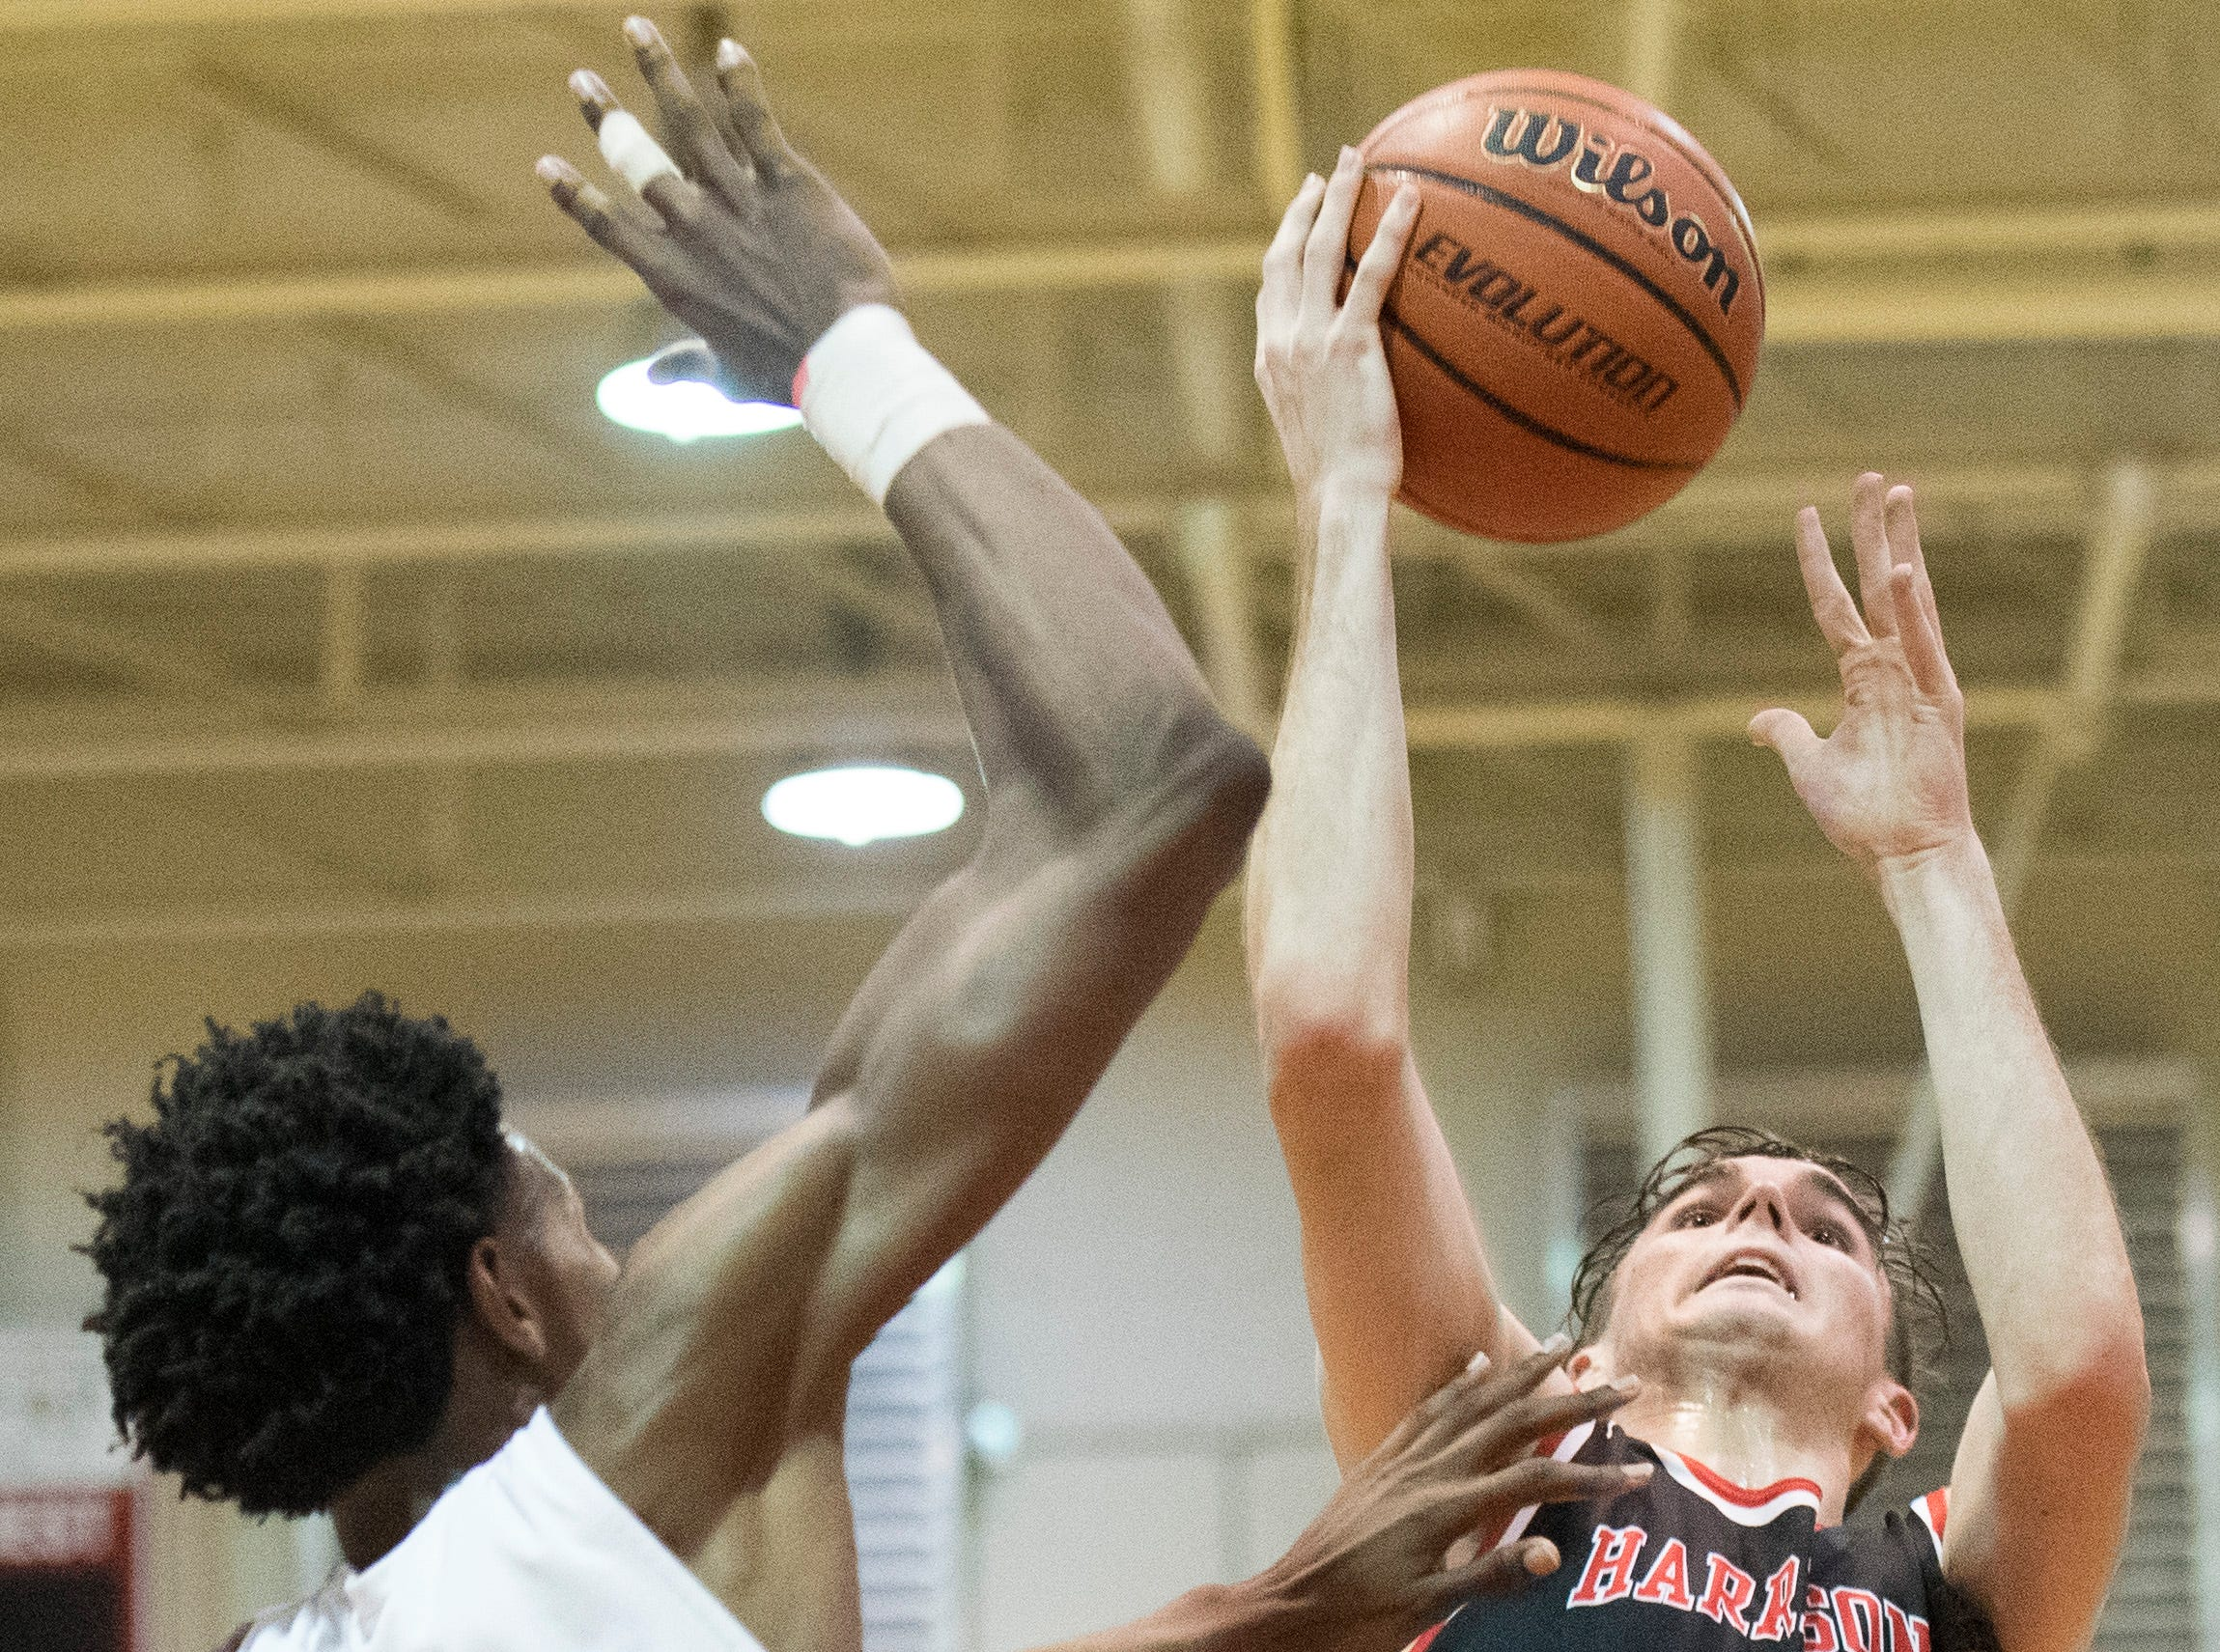 Harrison's Mason Bost (12) takes a shot during the Harrison vs Bosse game at Bosse High School Tuesday, Feb. 12, 2019. The Bosse Bulldogs won 74-56.